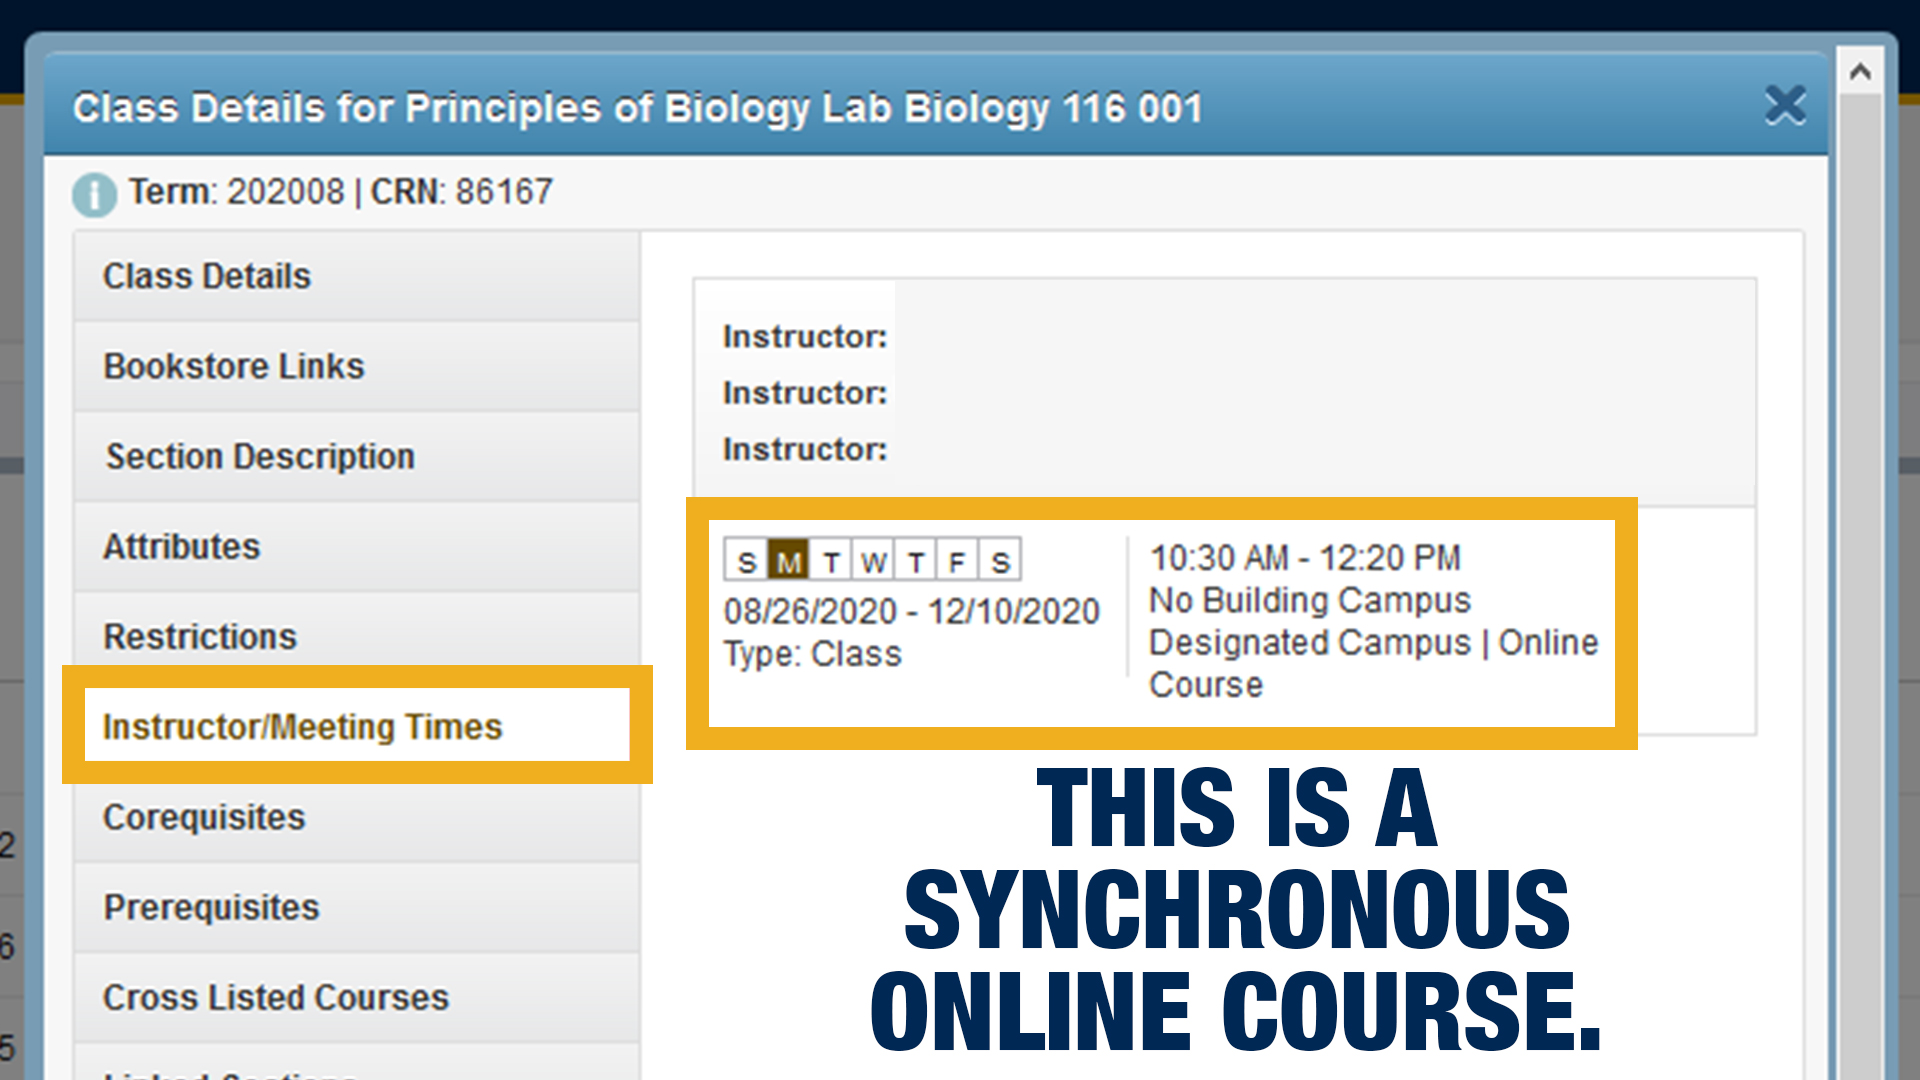 Screenshot of what a synchronous online course